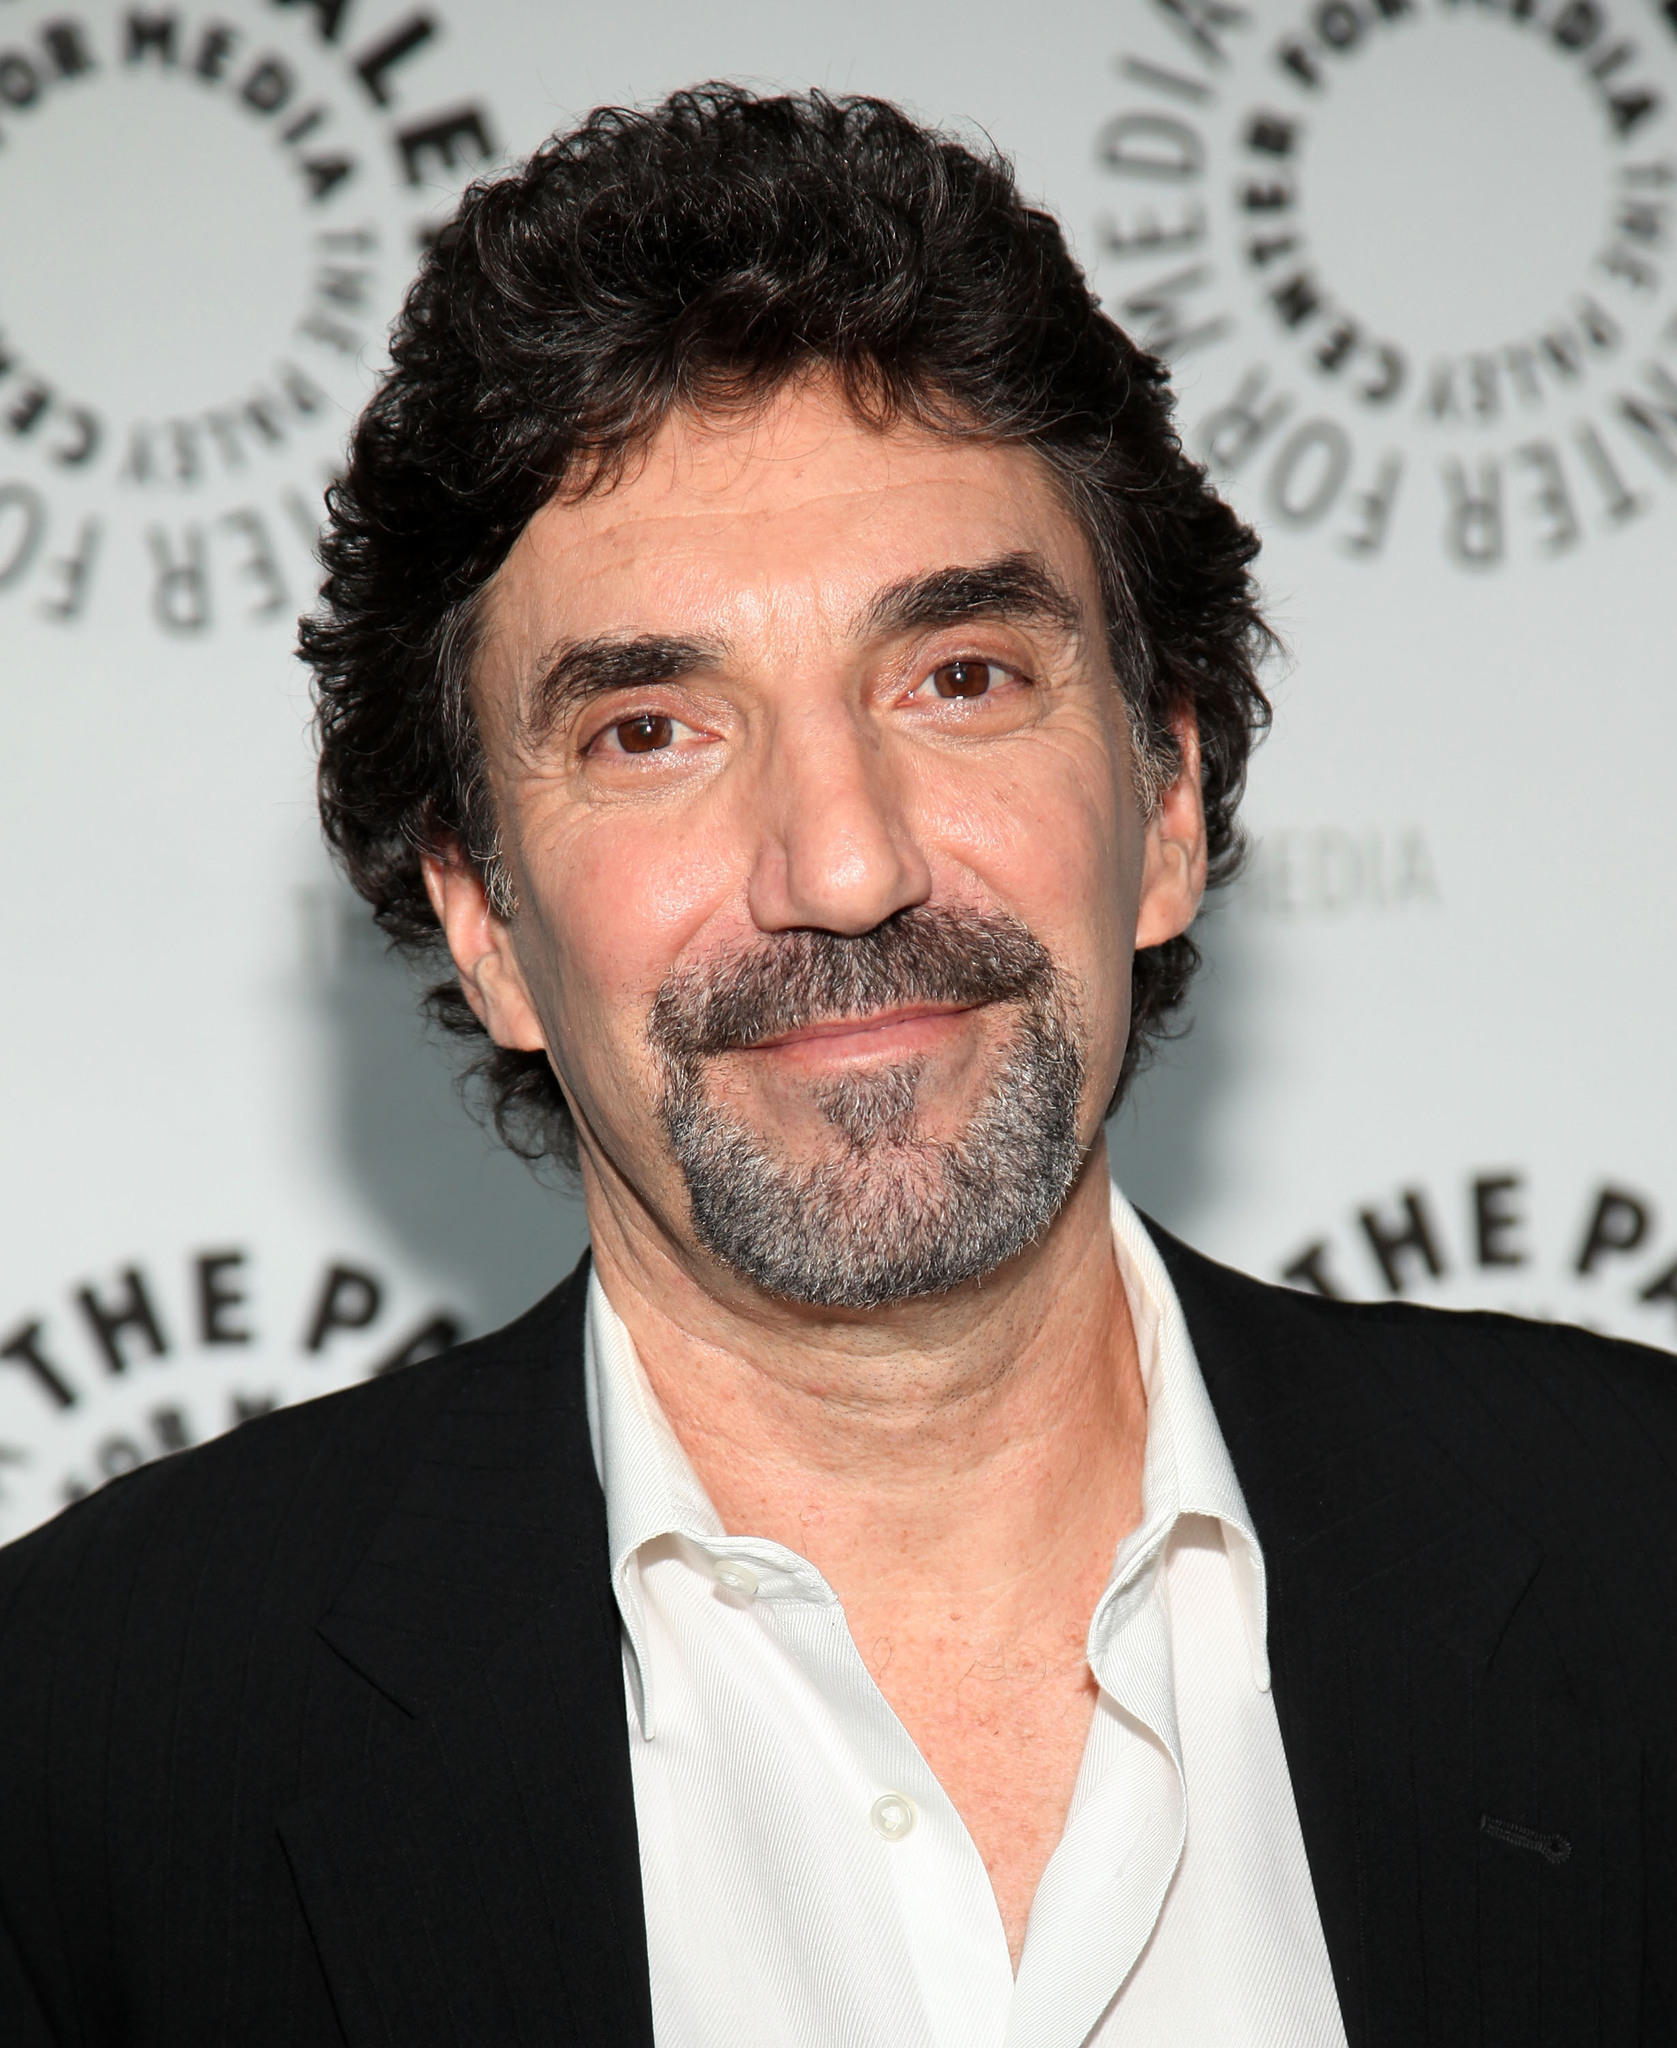 The 67-year old son of father (?) and mother(?) Chuck Lorre in 2020 photo. Chuck Lorre earned a  million dollar salary - leaving the net worth at  million in 2020